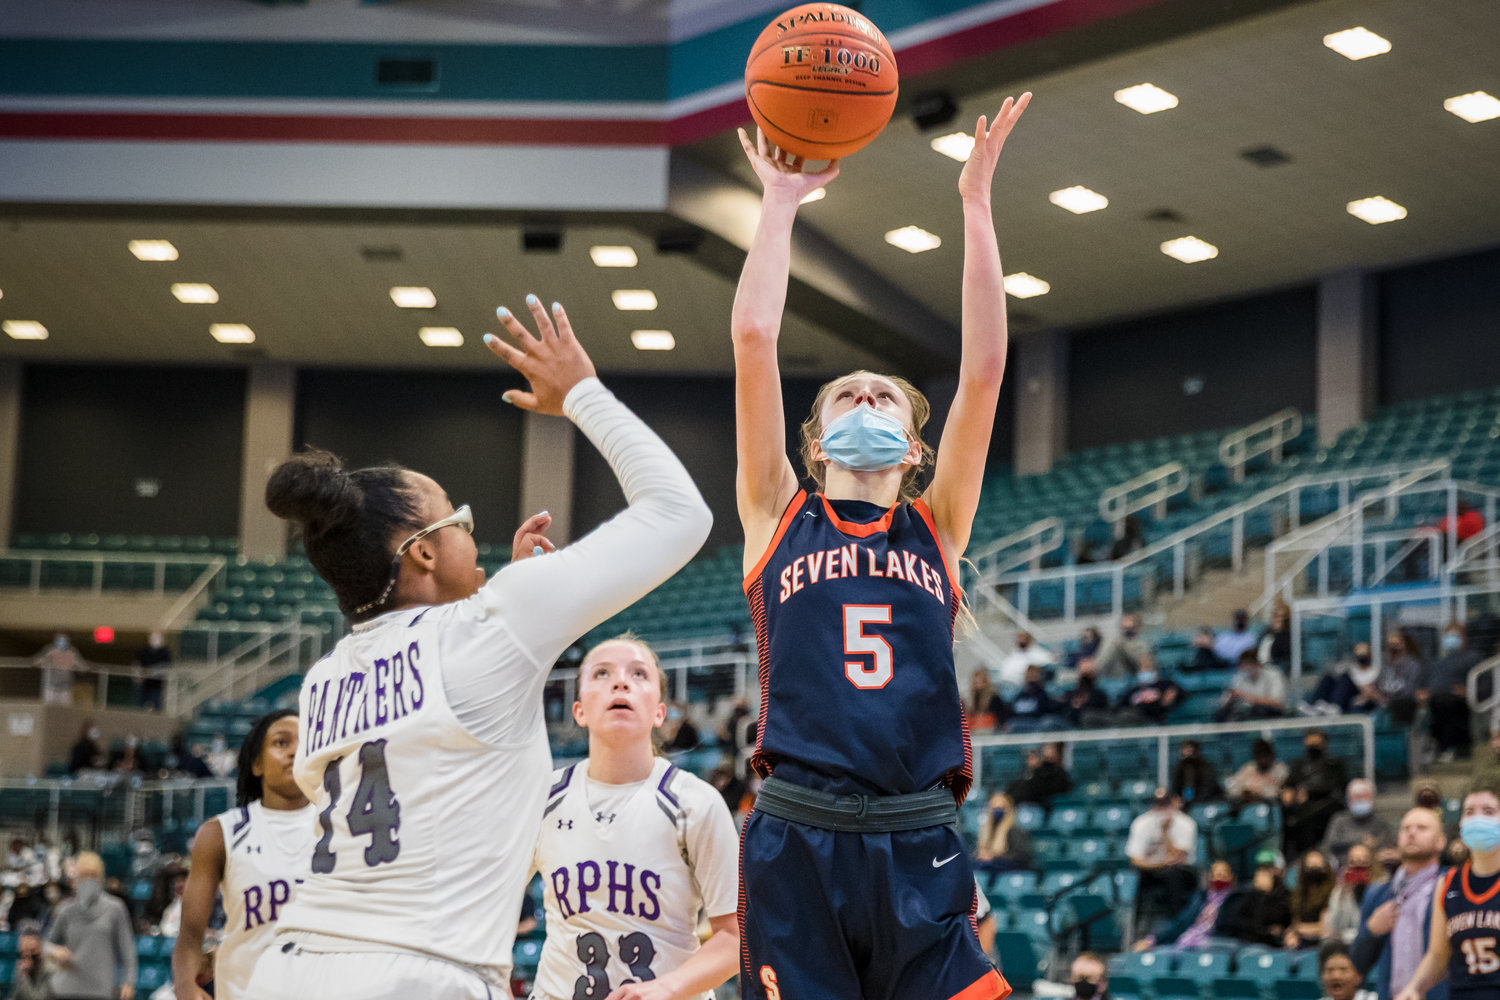 Seven Lakes' Lily Baumgardner (5) shoots over Fort Bend Ridge Point's Aleighyah Fontenot (14) during Thursday's Region III Class 6A bi-district playoff game at the Merrell Center in Katy.